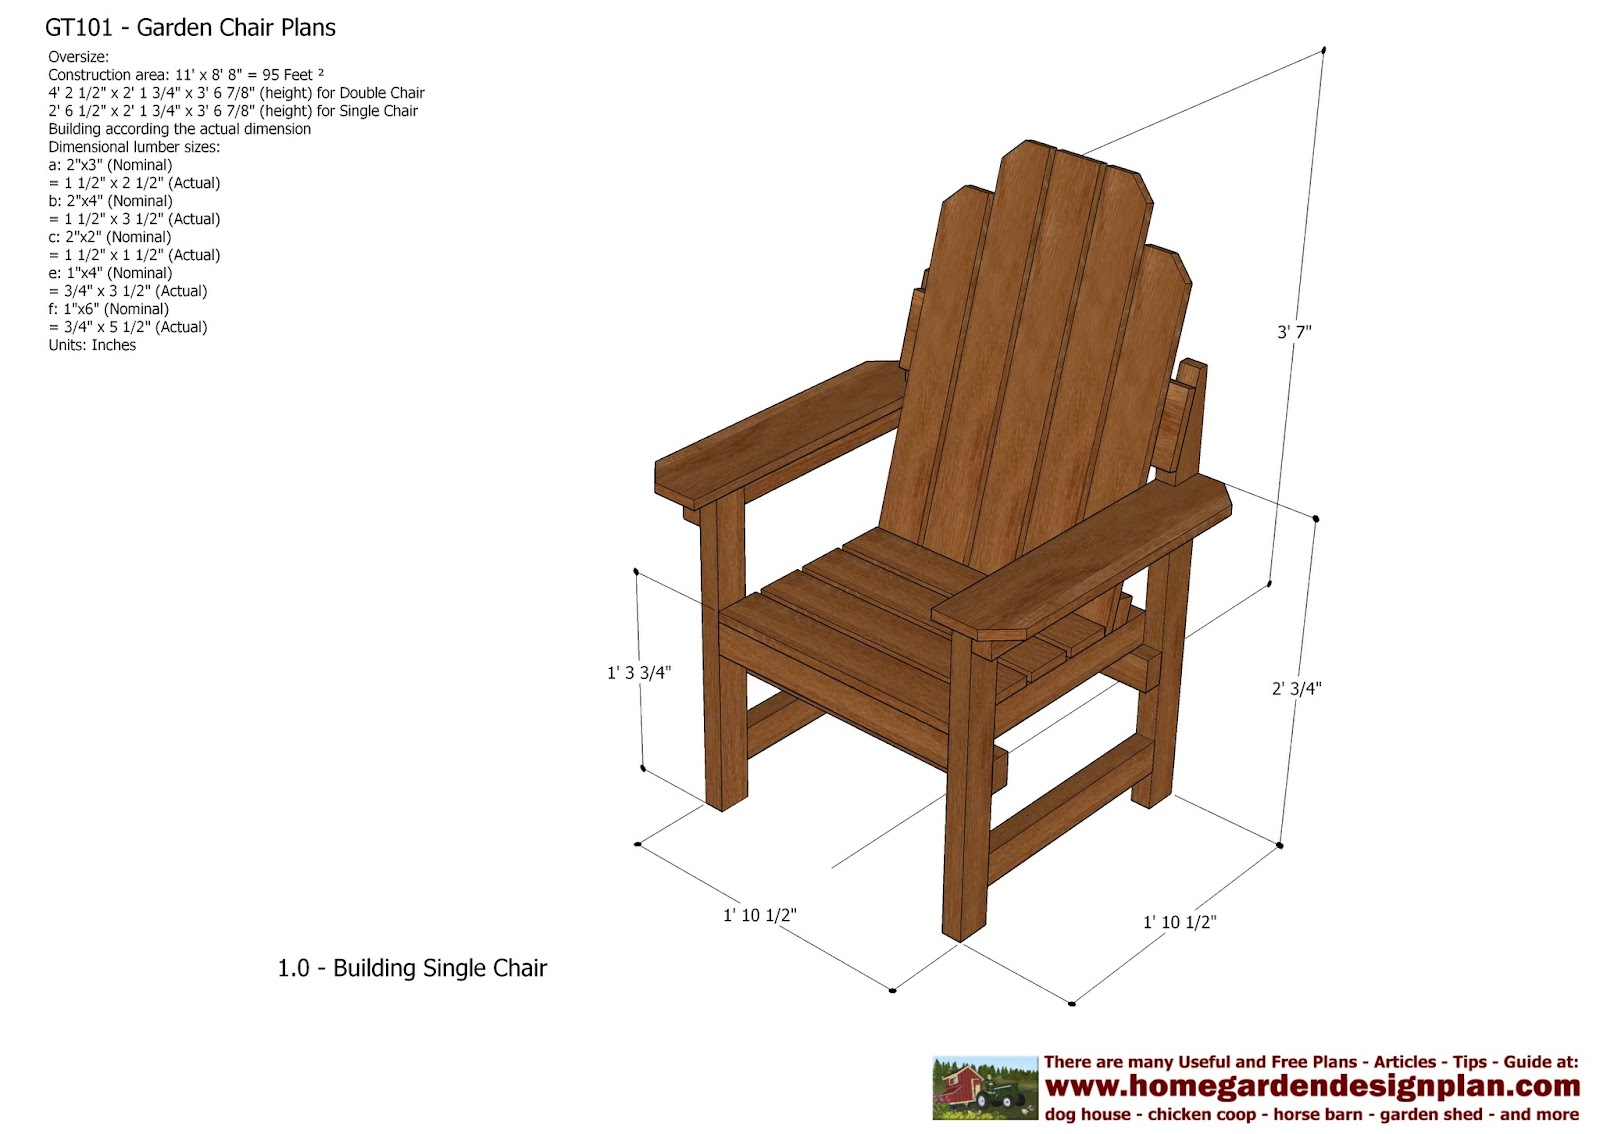 ... Garden Teak Table Plans - Out Door Furniture Plans - Woodworking Plans